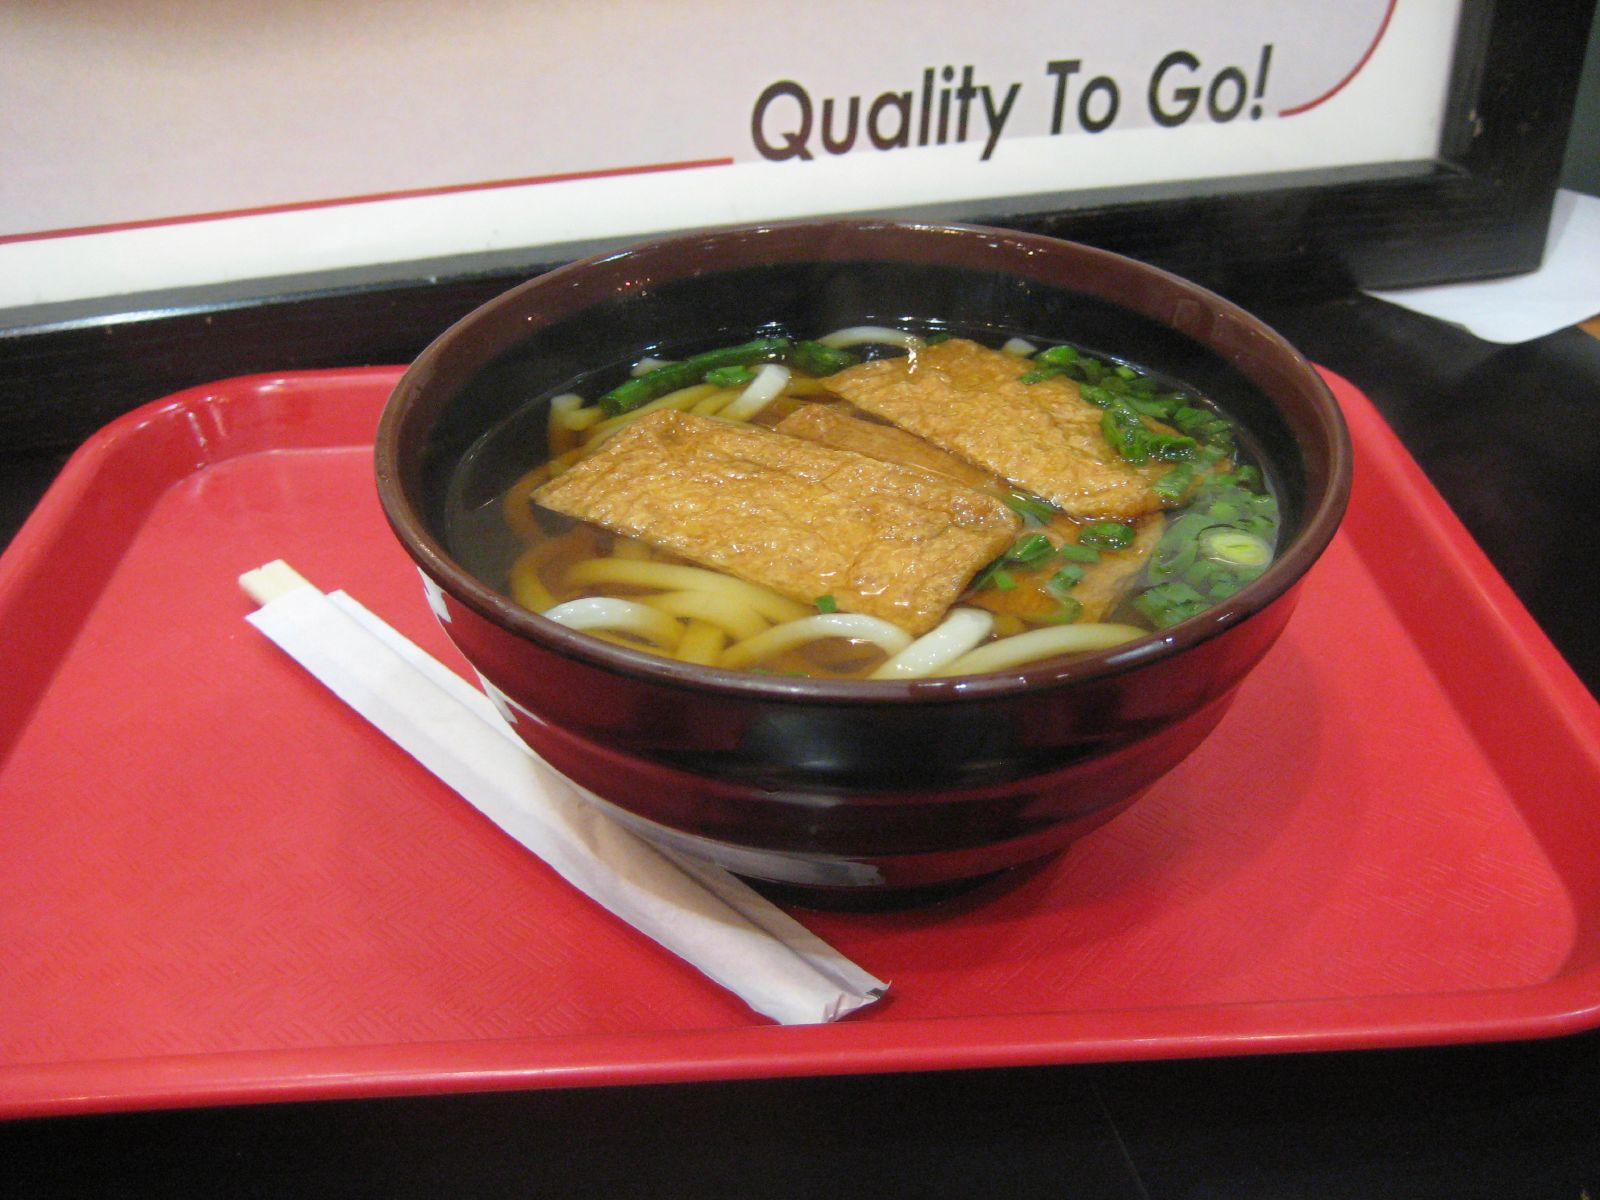 File:Kitsune udon in NYC by unforth by unforth.jpg - Wikimedia Commons